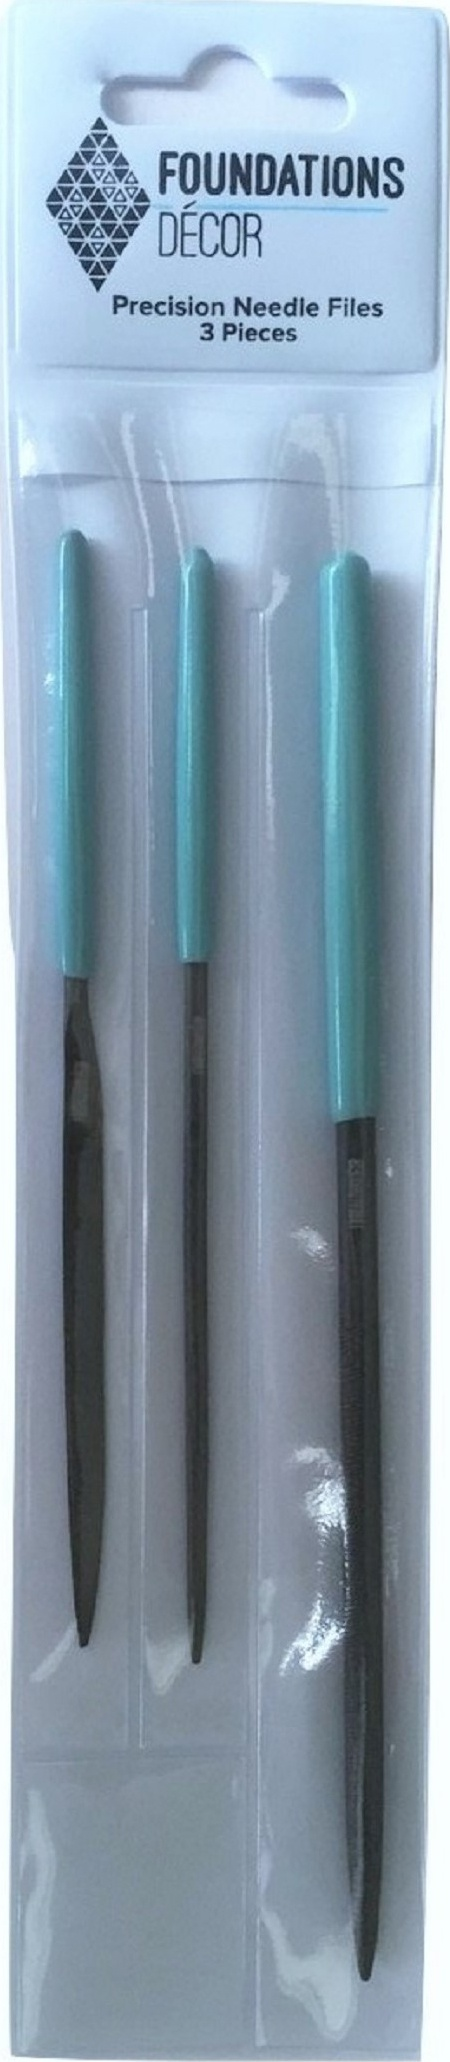 Precision Needle Files Set of 3